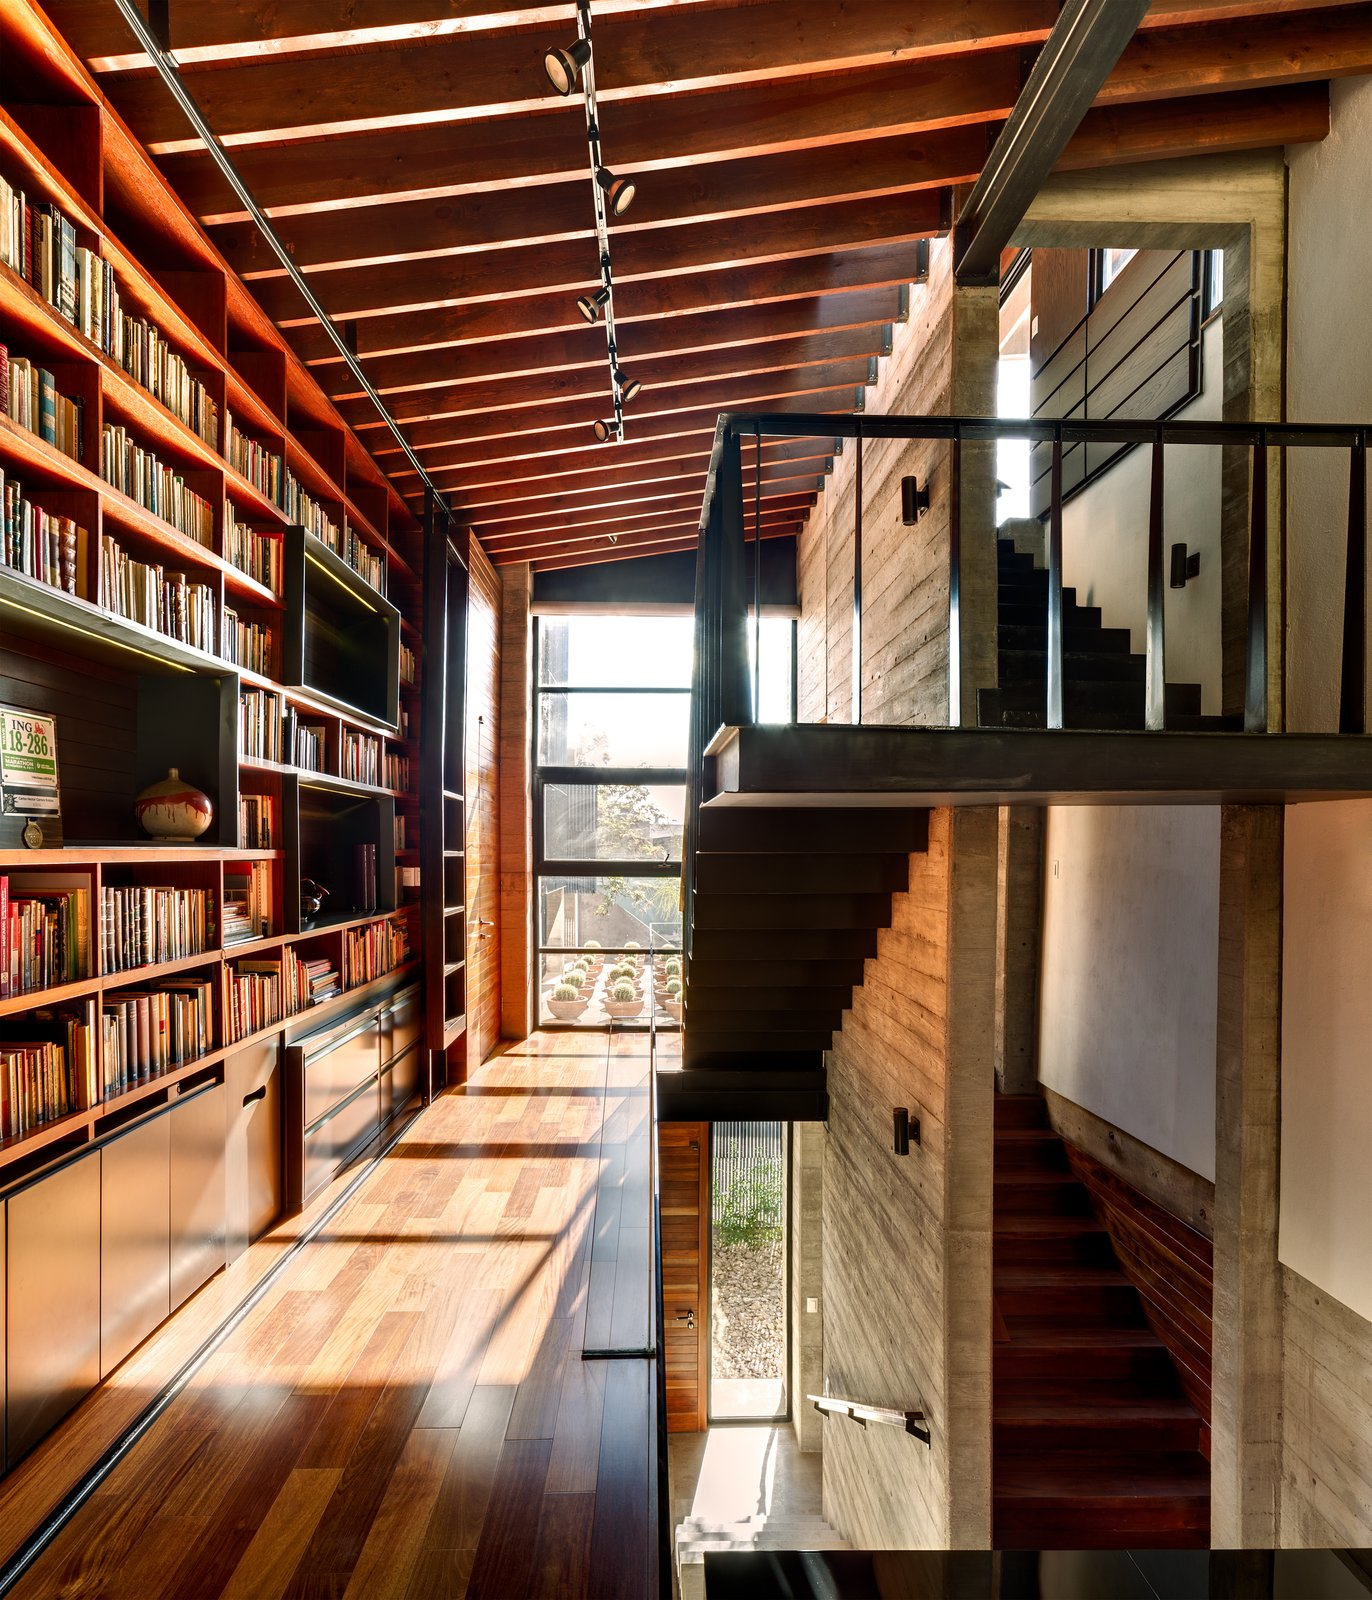 Suspended over the living room, the library bridge connects the second floor rooms of the house. The transitional space contains built-ins and desks where the owners and their three-year-old daughter can sit and read. The steel of the staircase is supported entirely by the adjacent concrete wall. A marriage of concrete, wood, and glass is used in the space, and the large windows let light in and offer a view of the roof garden.